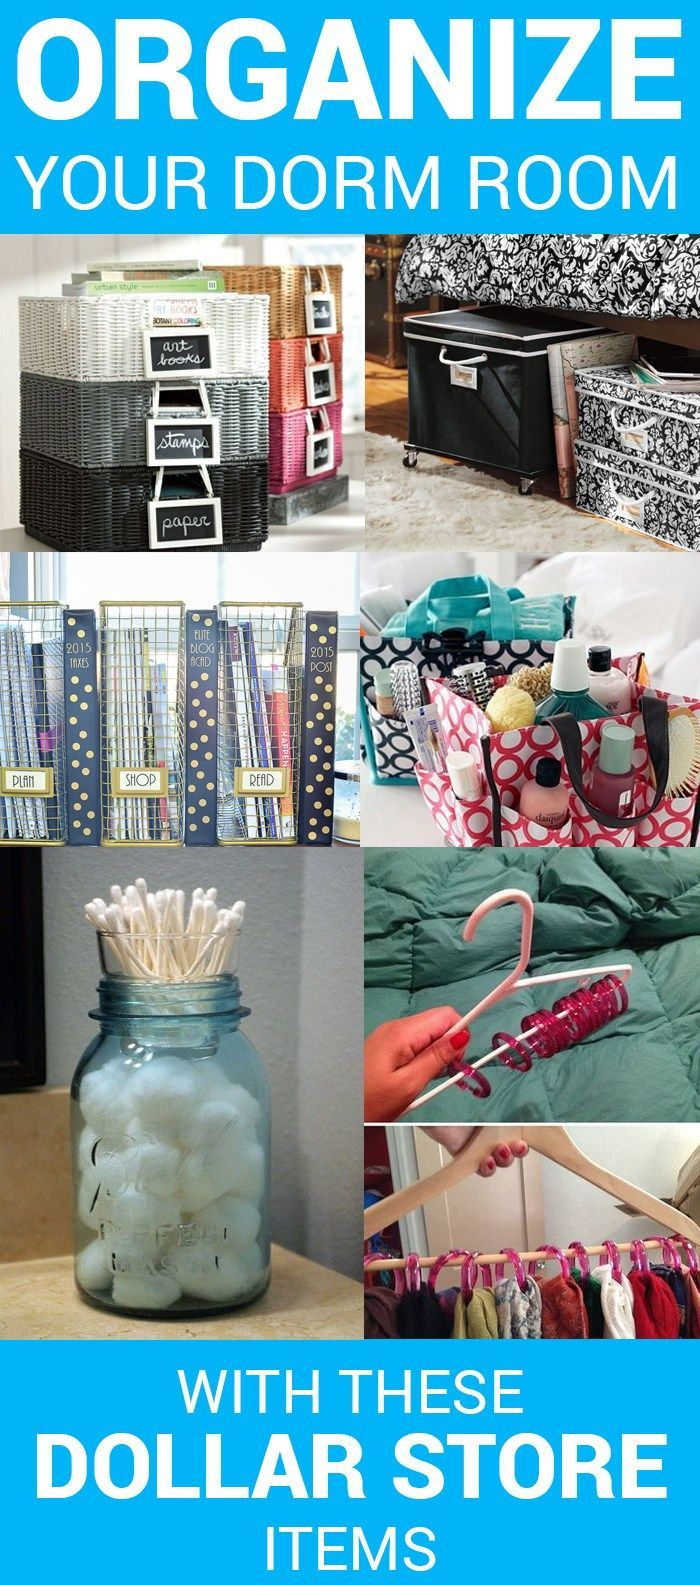 organize your dorm room with these 6 dollar store items | dorm